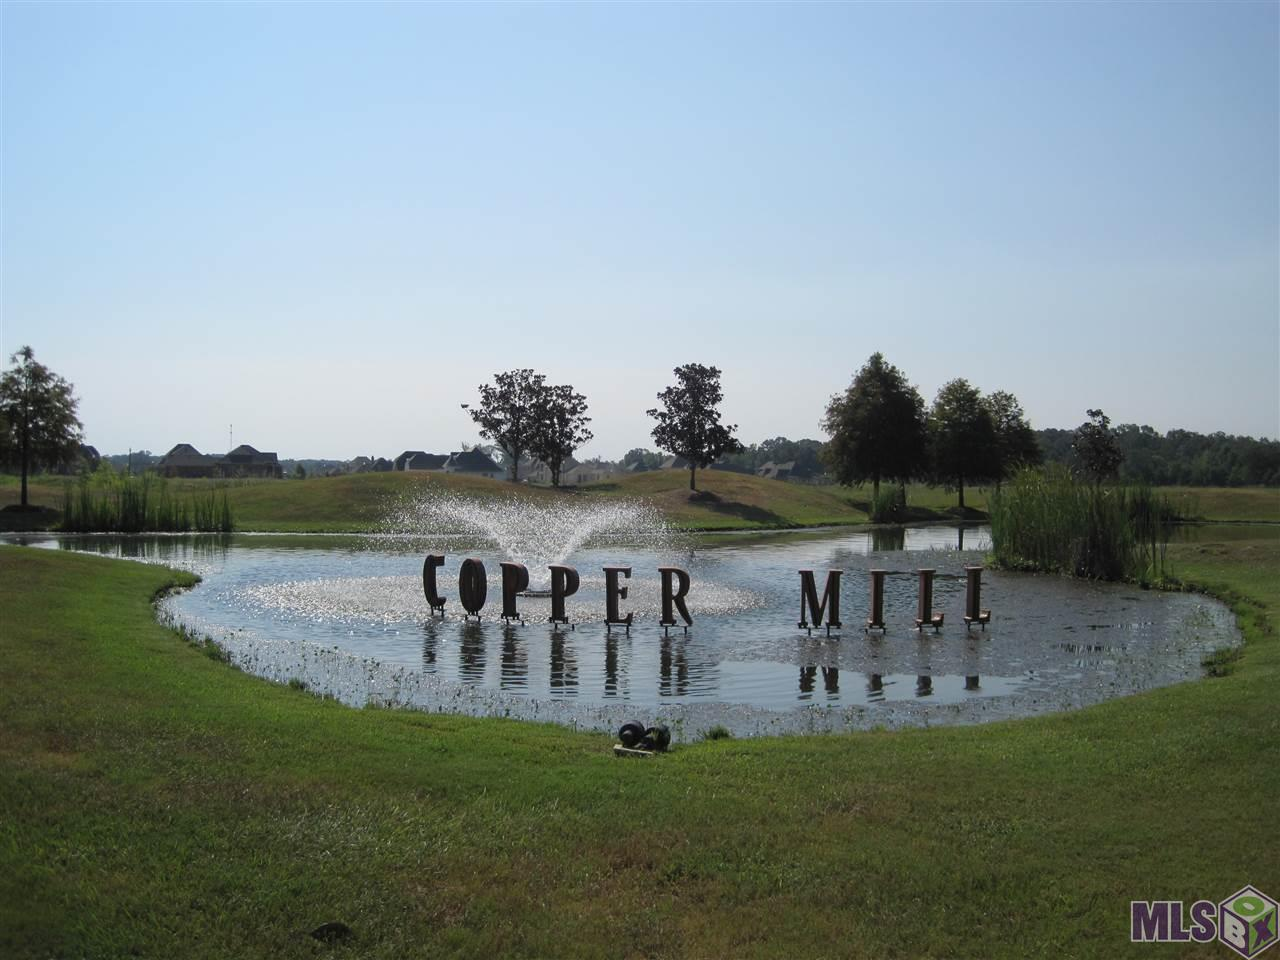 Wonderful golf course lot in popular Copper Mill Golf Community.  Build your dream home on this lot overlooking number 16 of the golf course.  Enjoy the lifestyle of Copper Mill including a family golf membership, Turnberry Park, Community Pool and Splash Pad, Fishing Pond, Walking Trails, Tennis Courts and so much more!  Call today for details